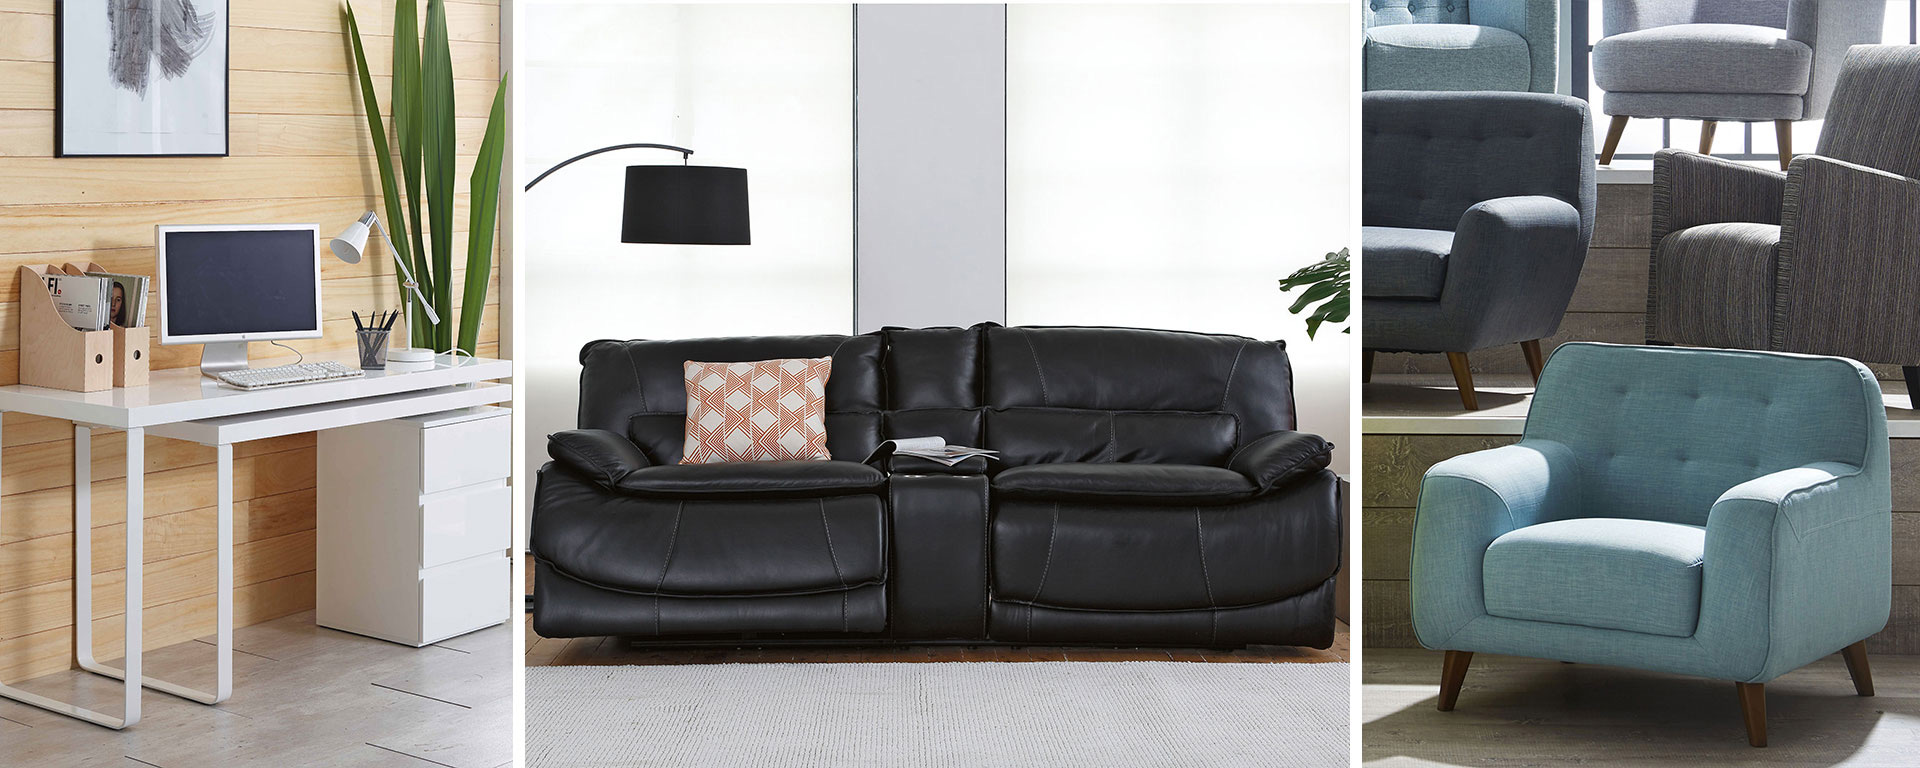 Fathers-Day-Furniture-Gifts